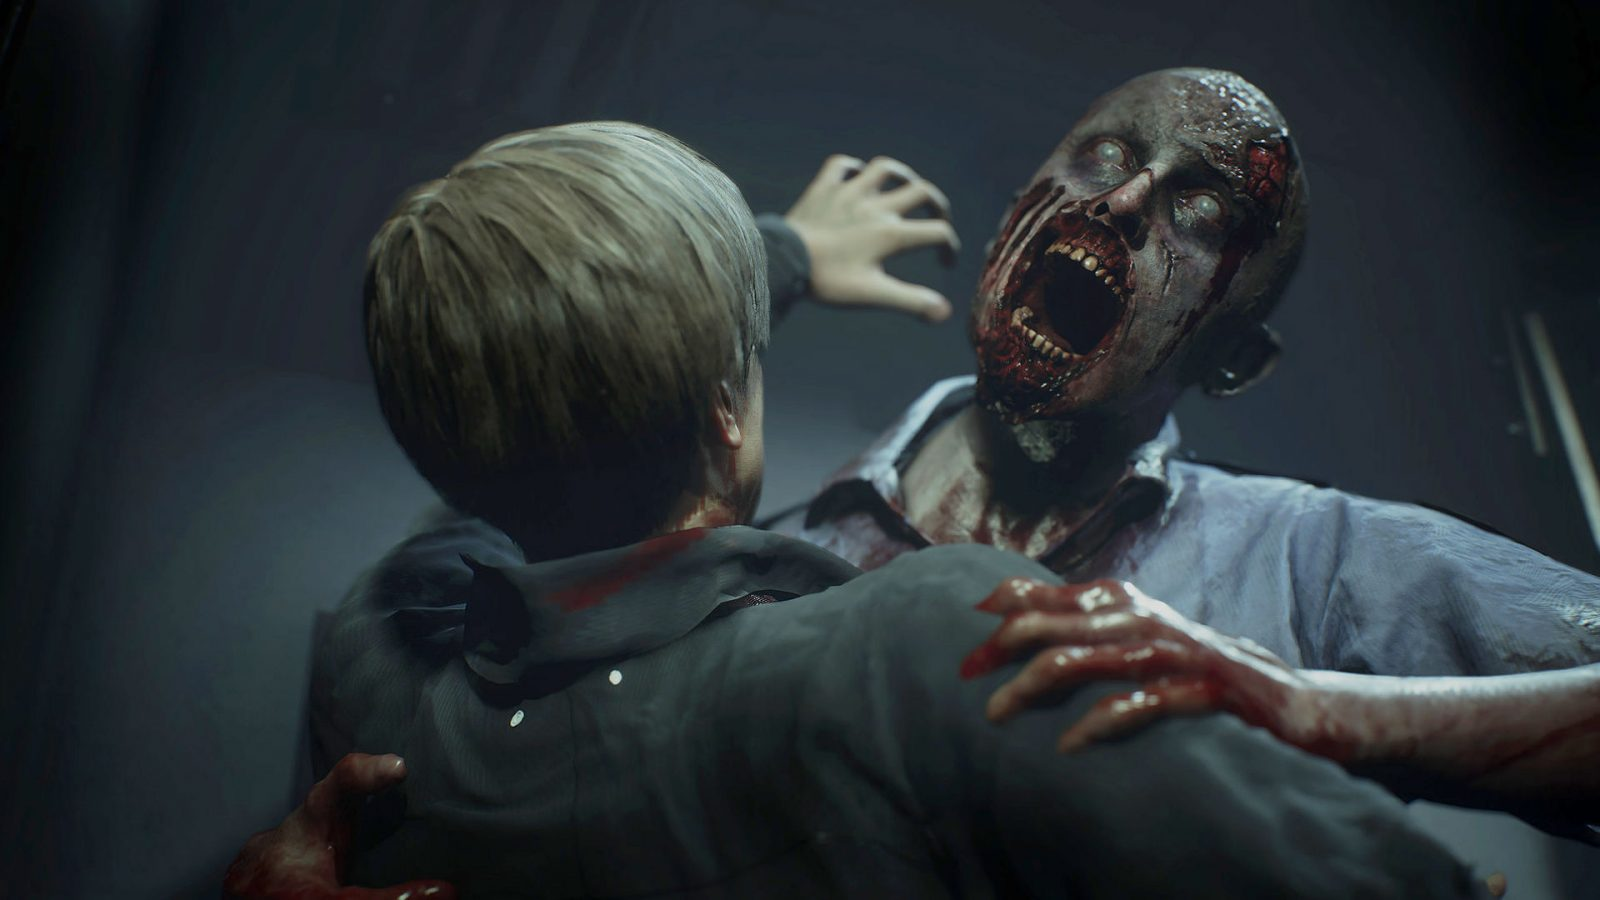 Resident Evil 3 remake in the works, it seems